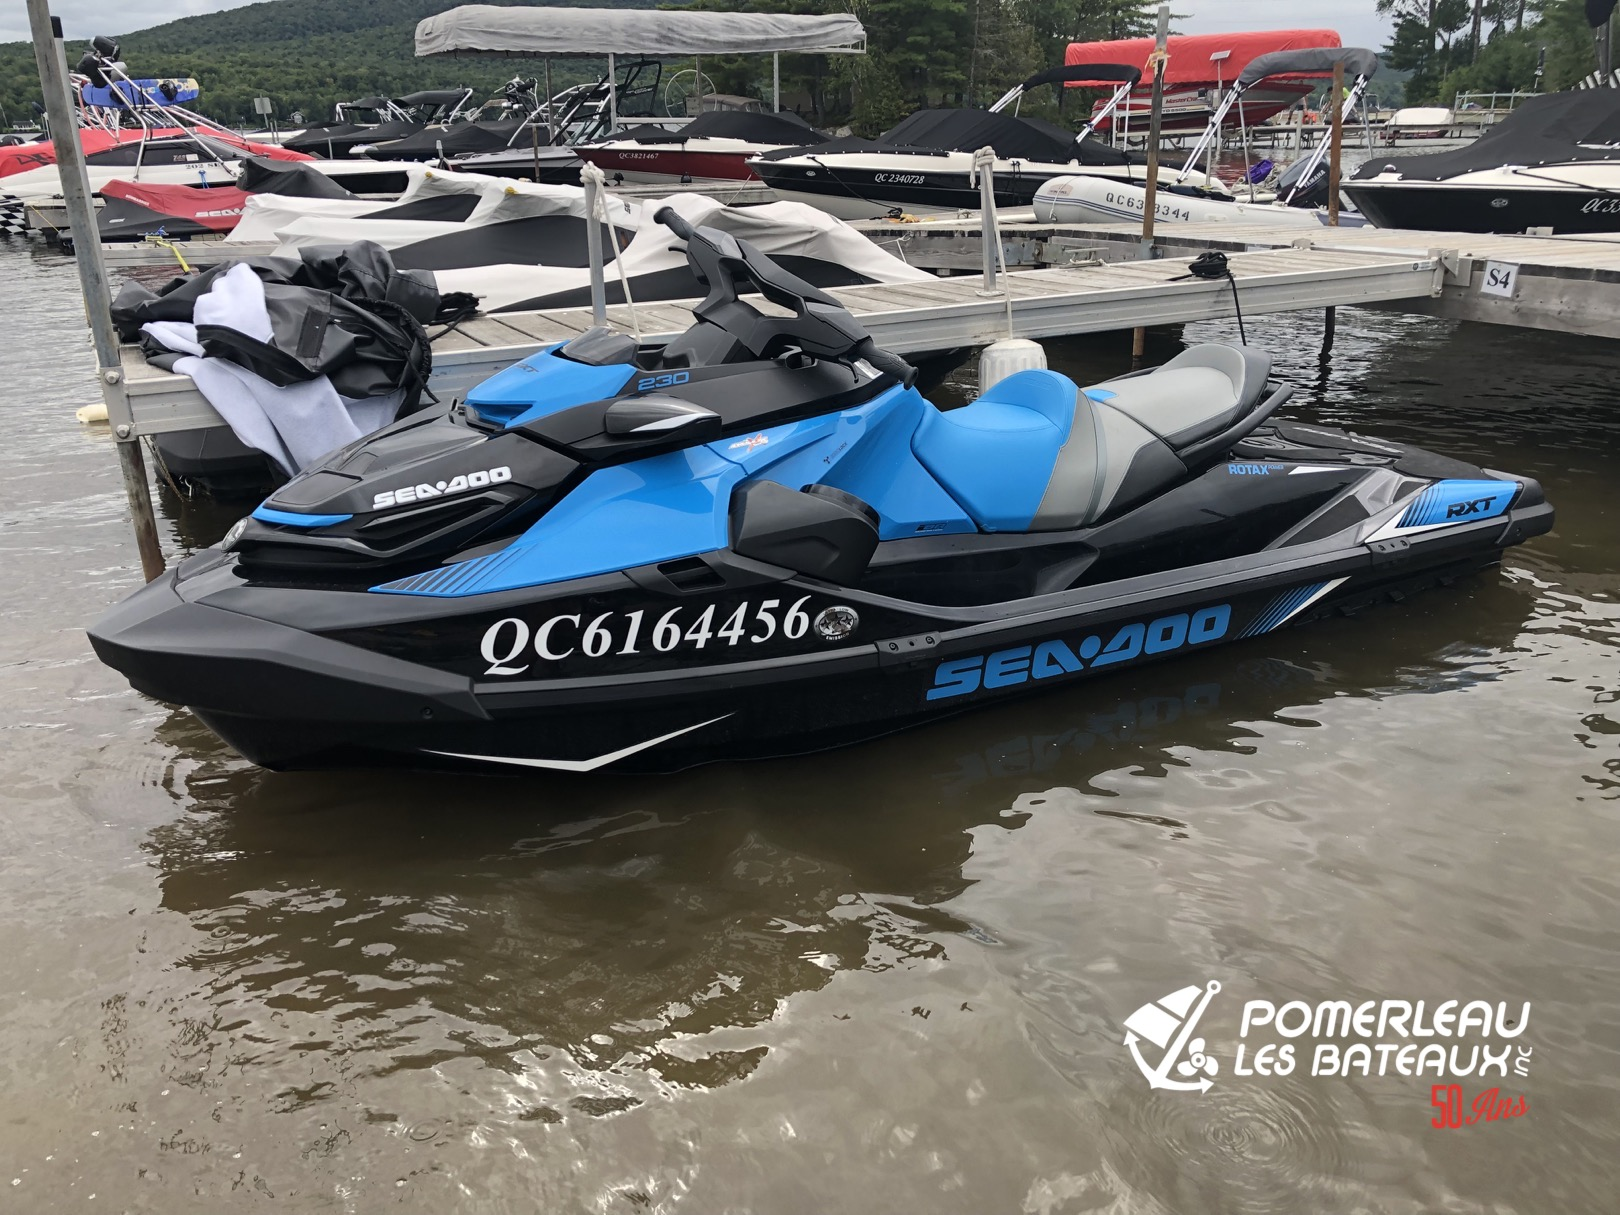 Seadoo RXT 230 - Photo 19-08-23 16 22 40